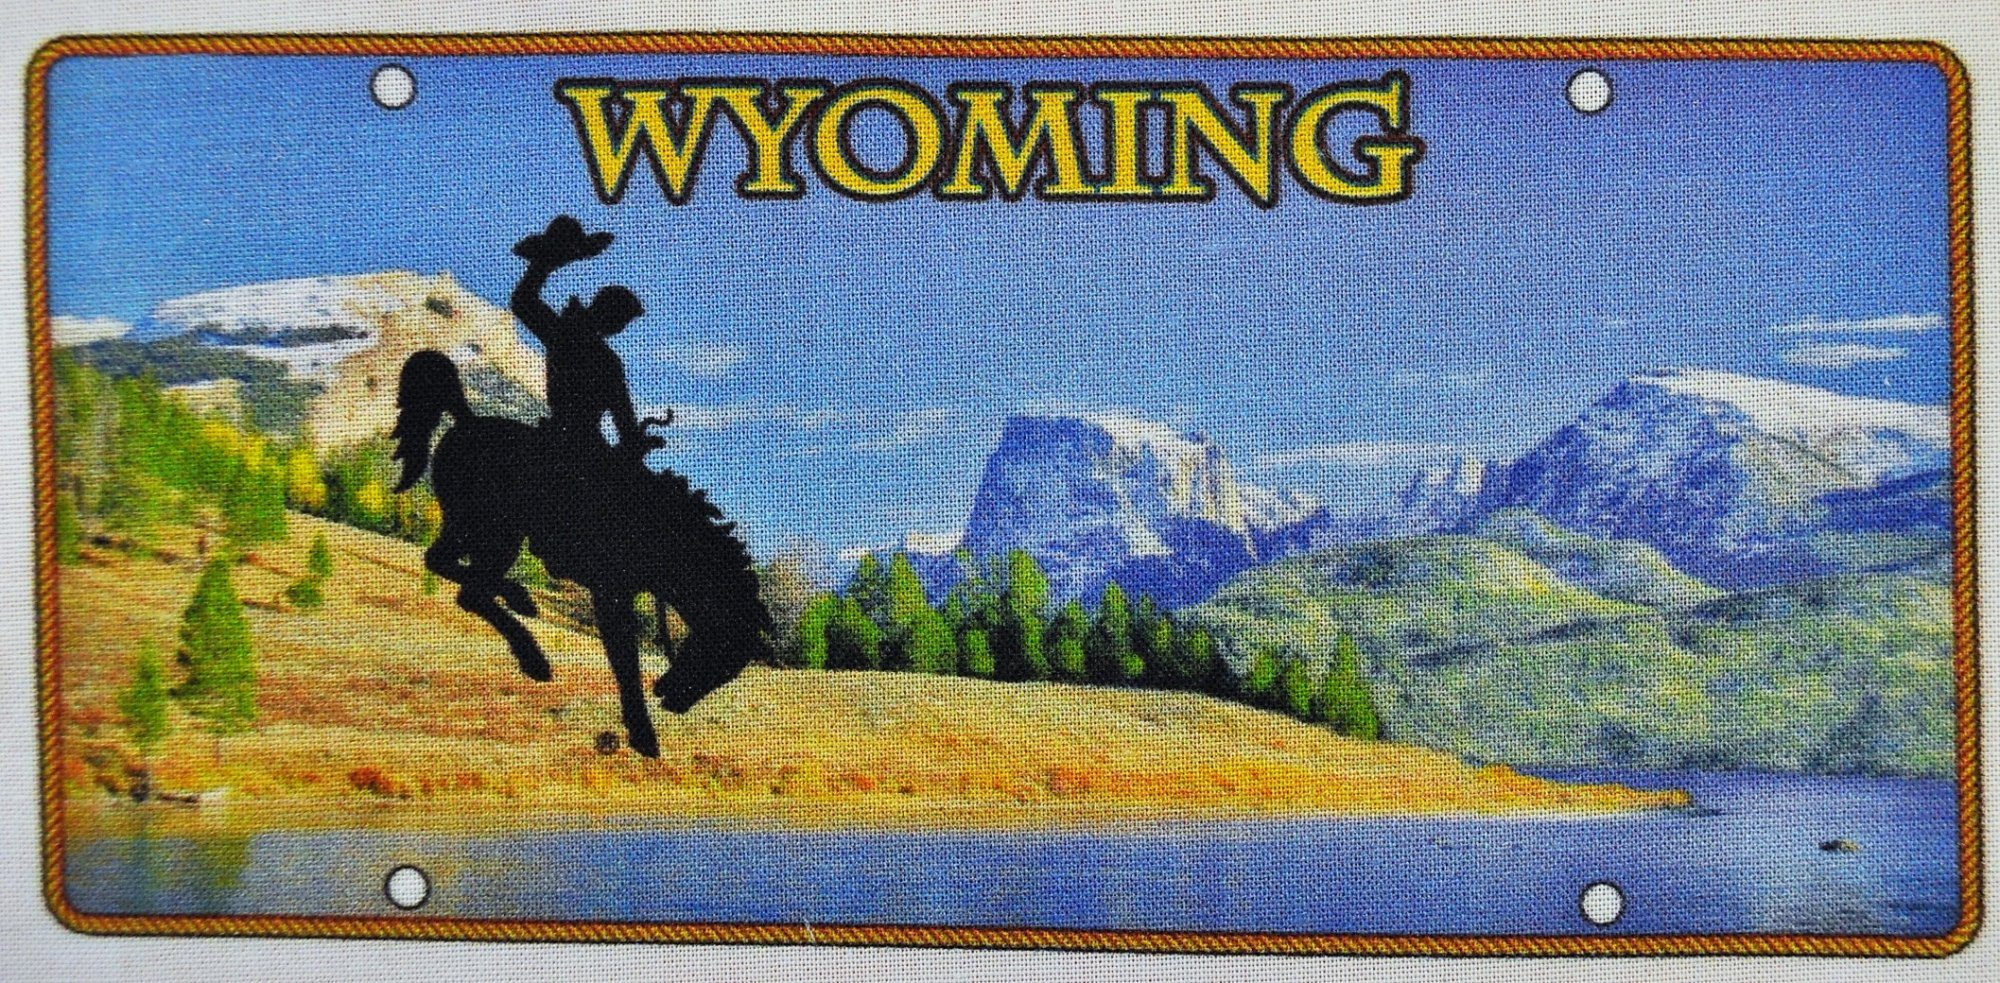 Wyoming License Plate - 3.25 x 6.75